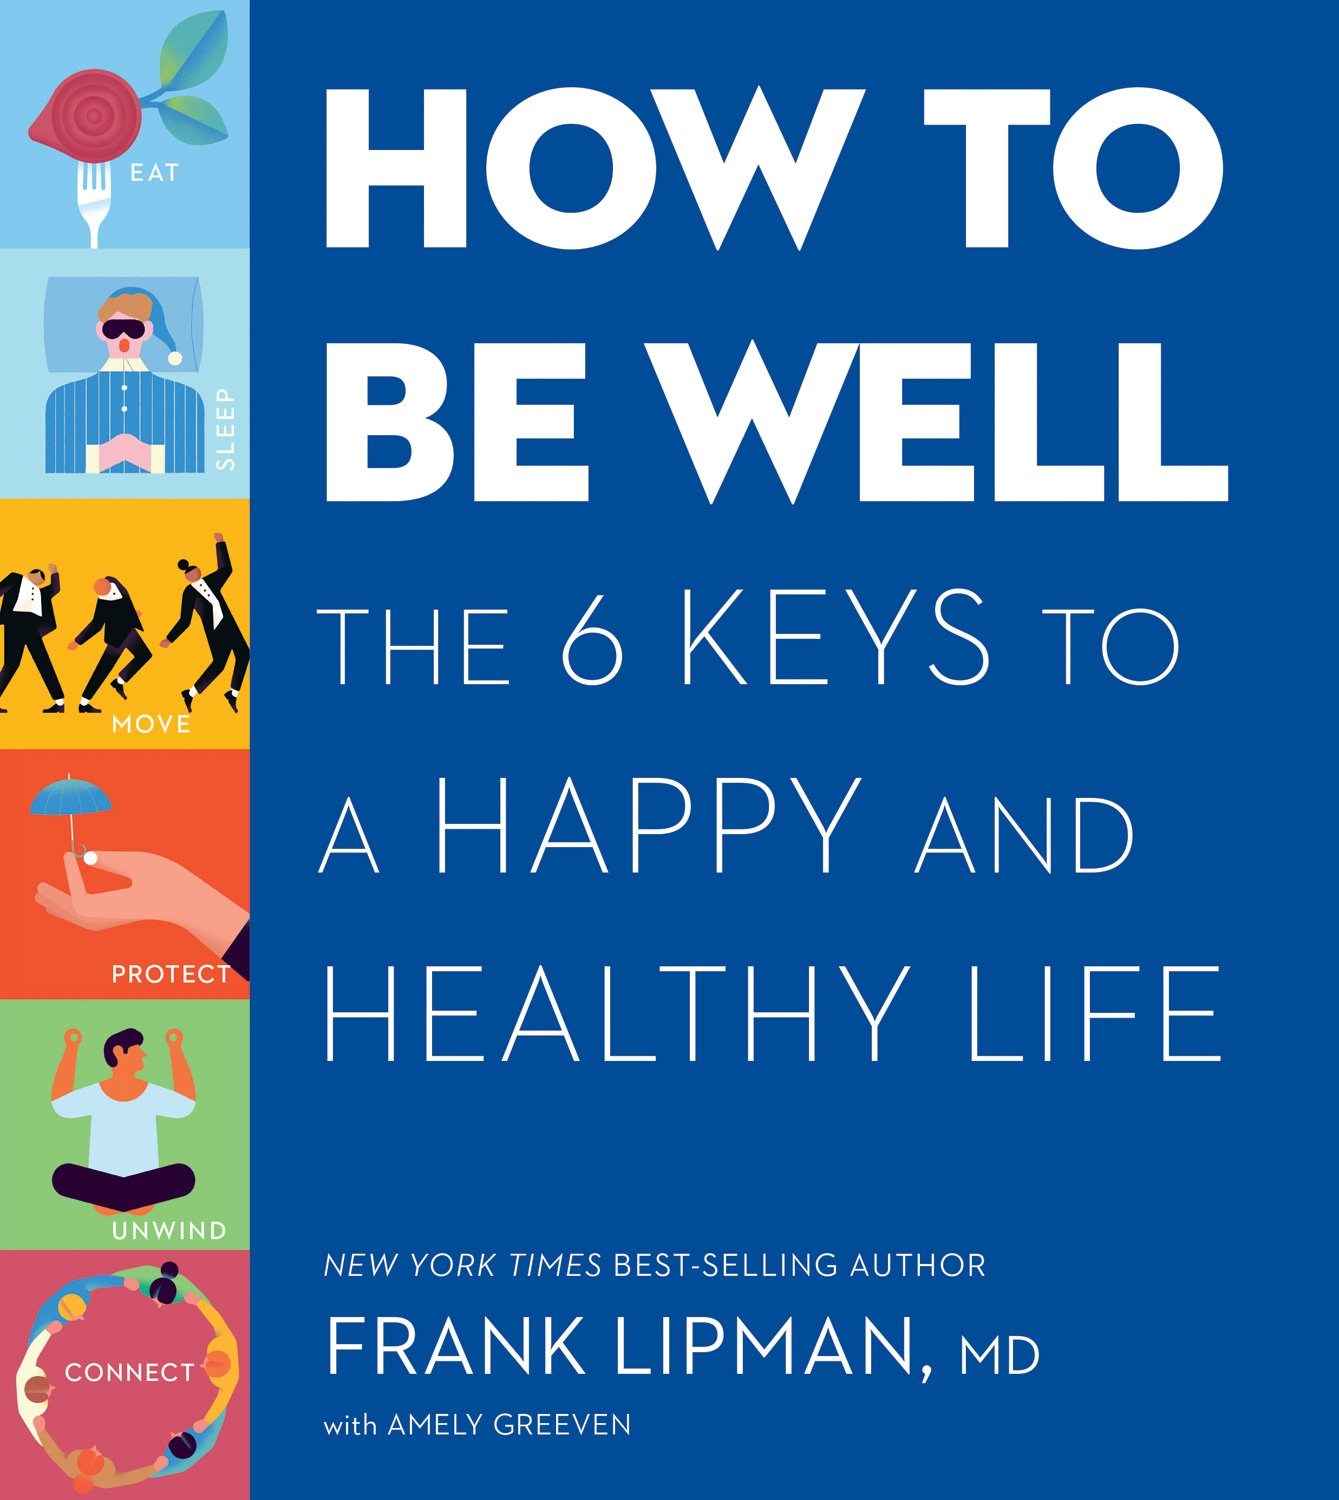 How to Be Well by Dr. Frank Lipman.